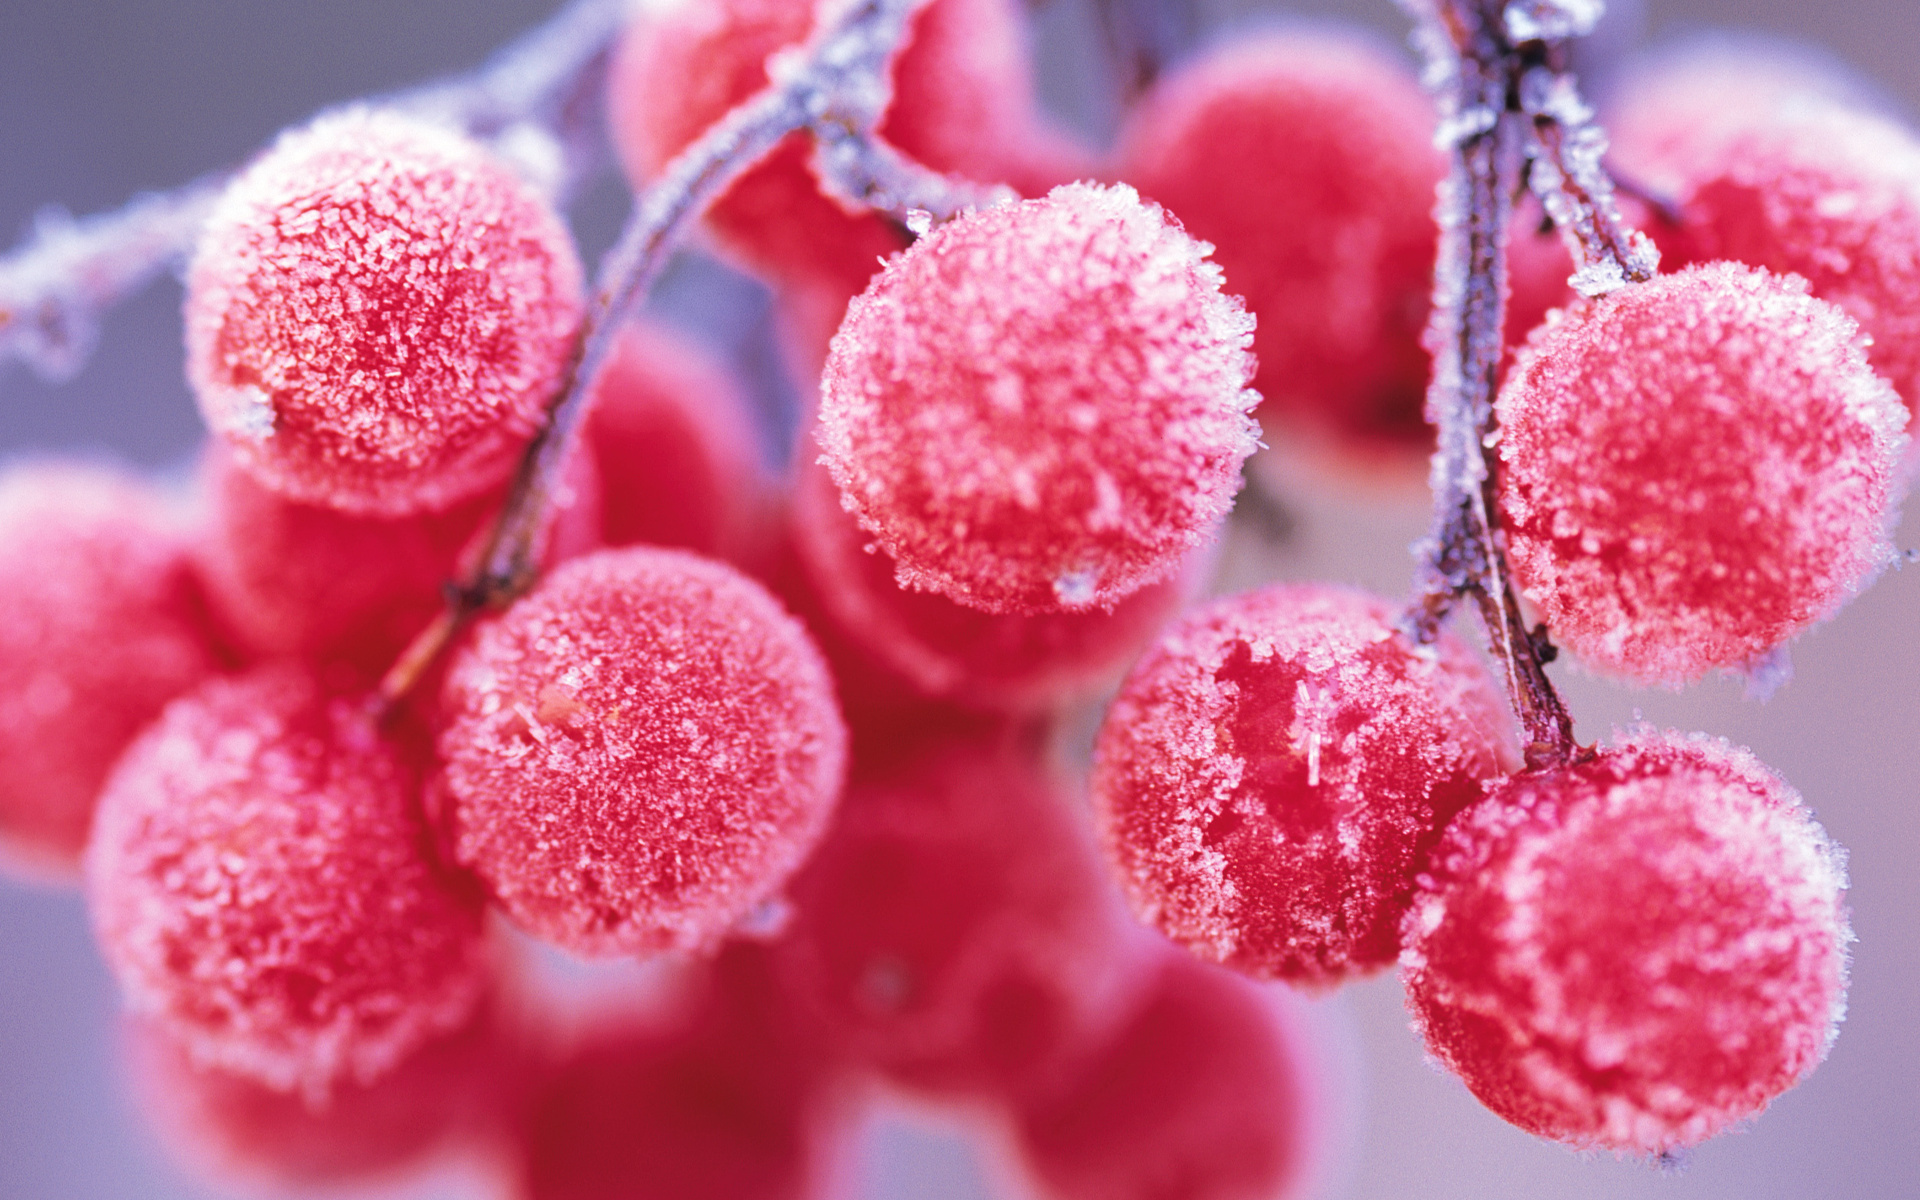 39632 download wallpaper Plants, Berries screensavers and pictures for free